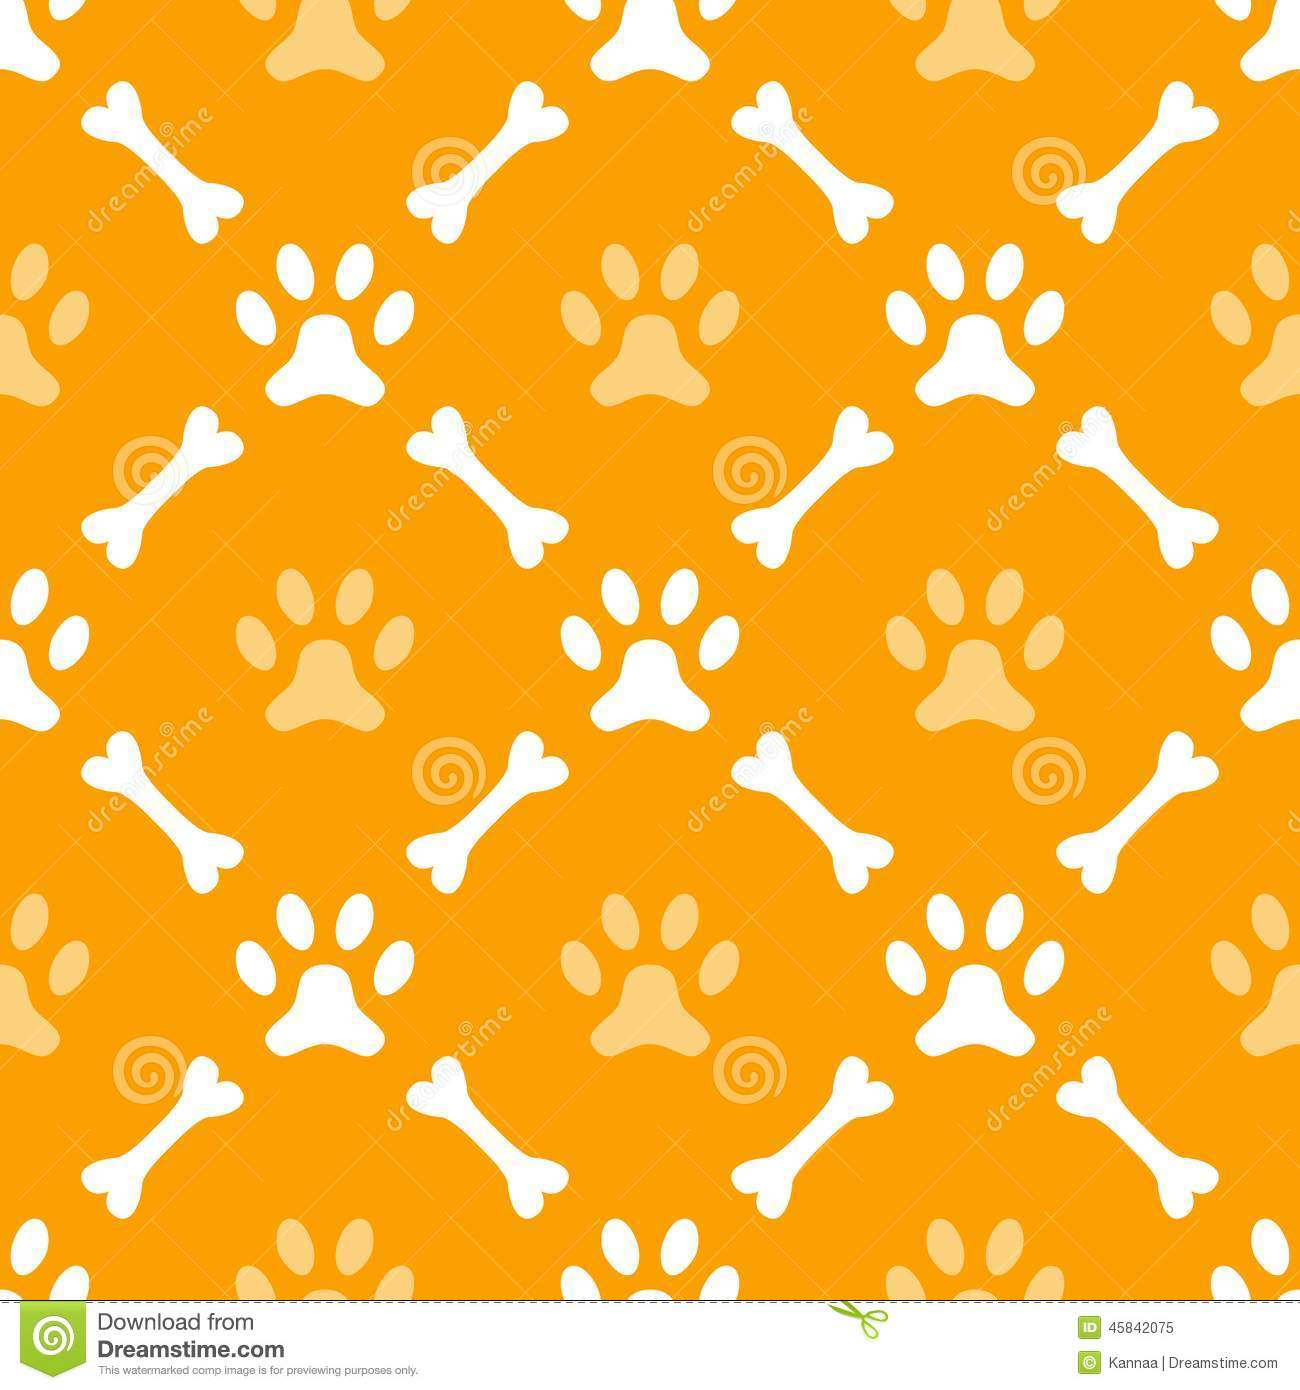 Animal Seamless Vector Pattern Of Paw Footprint Stock